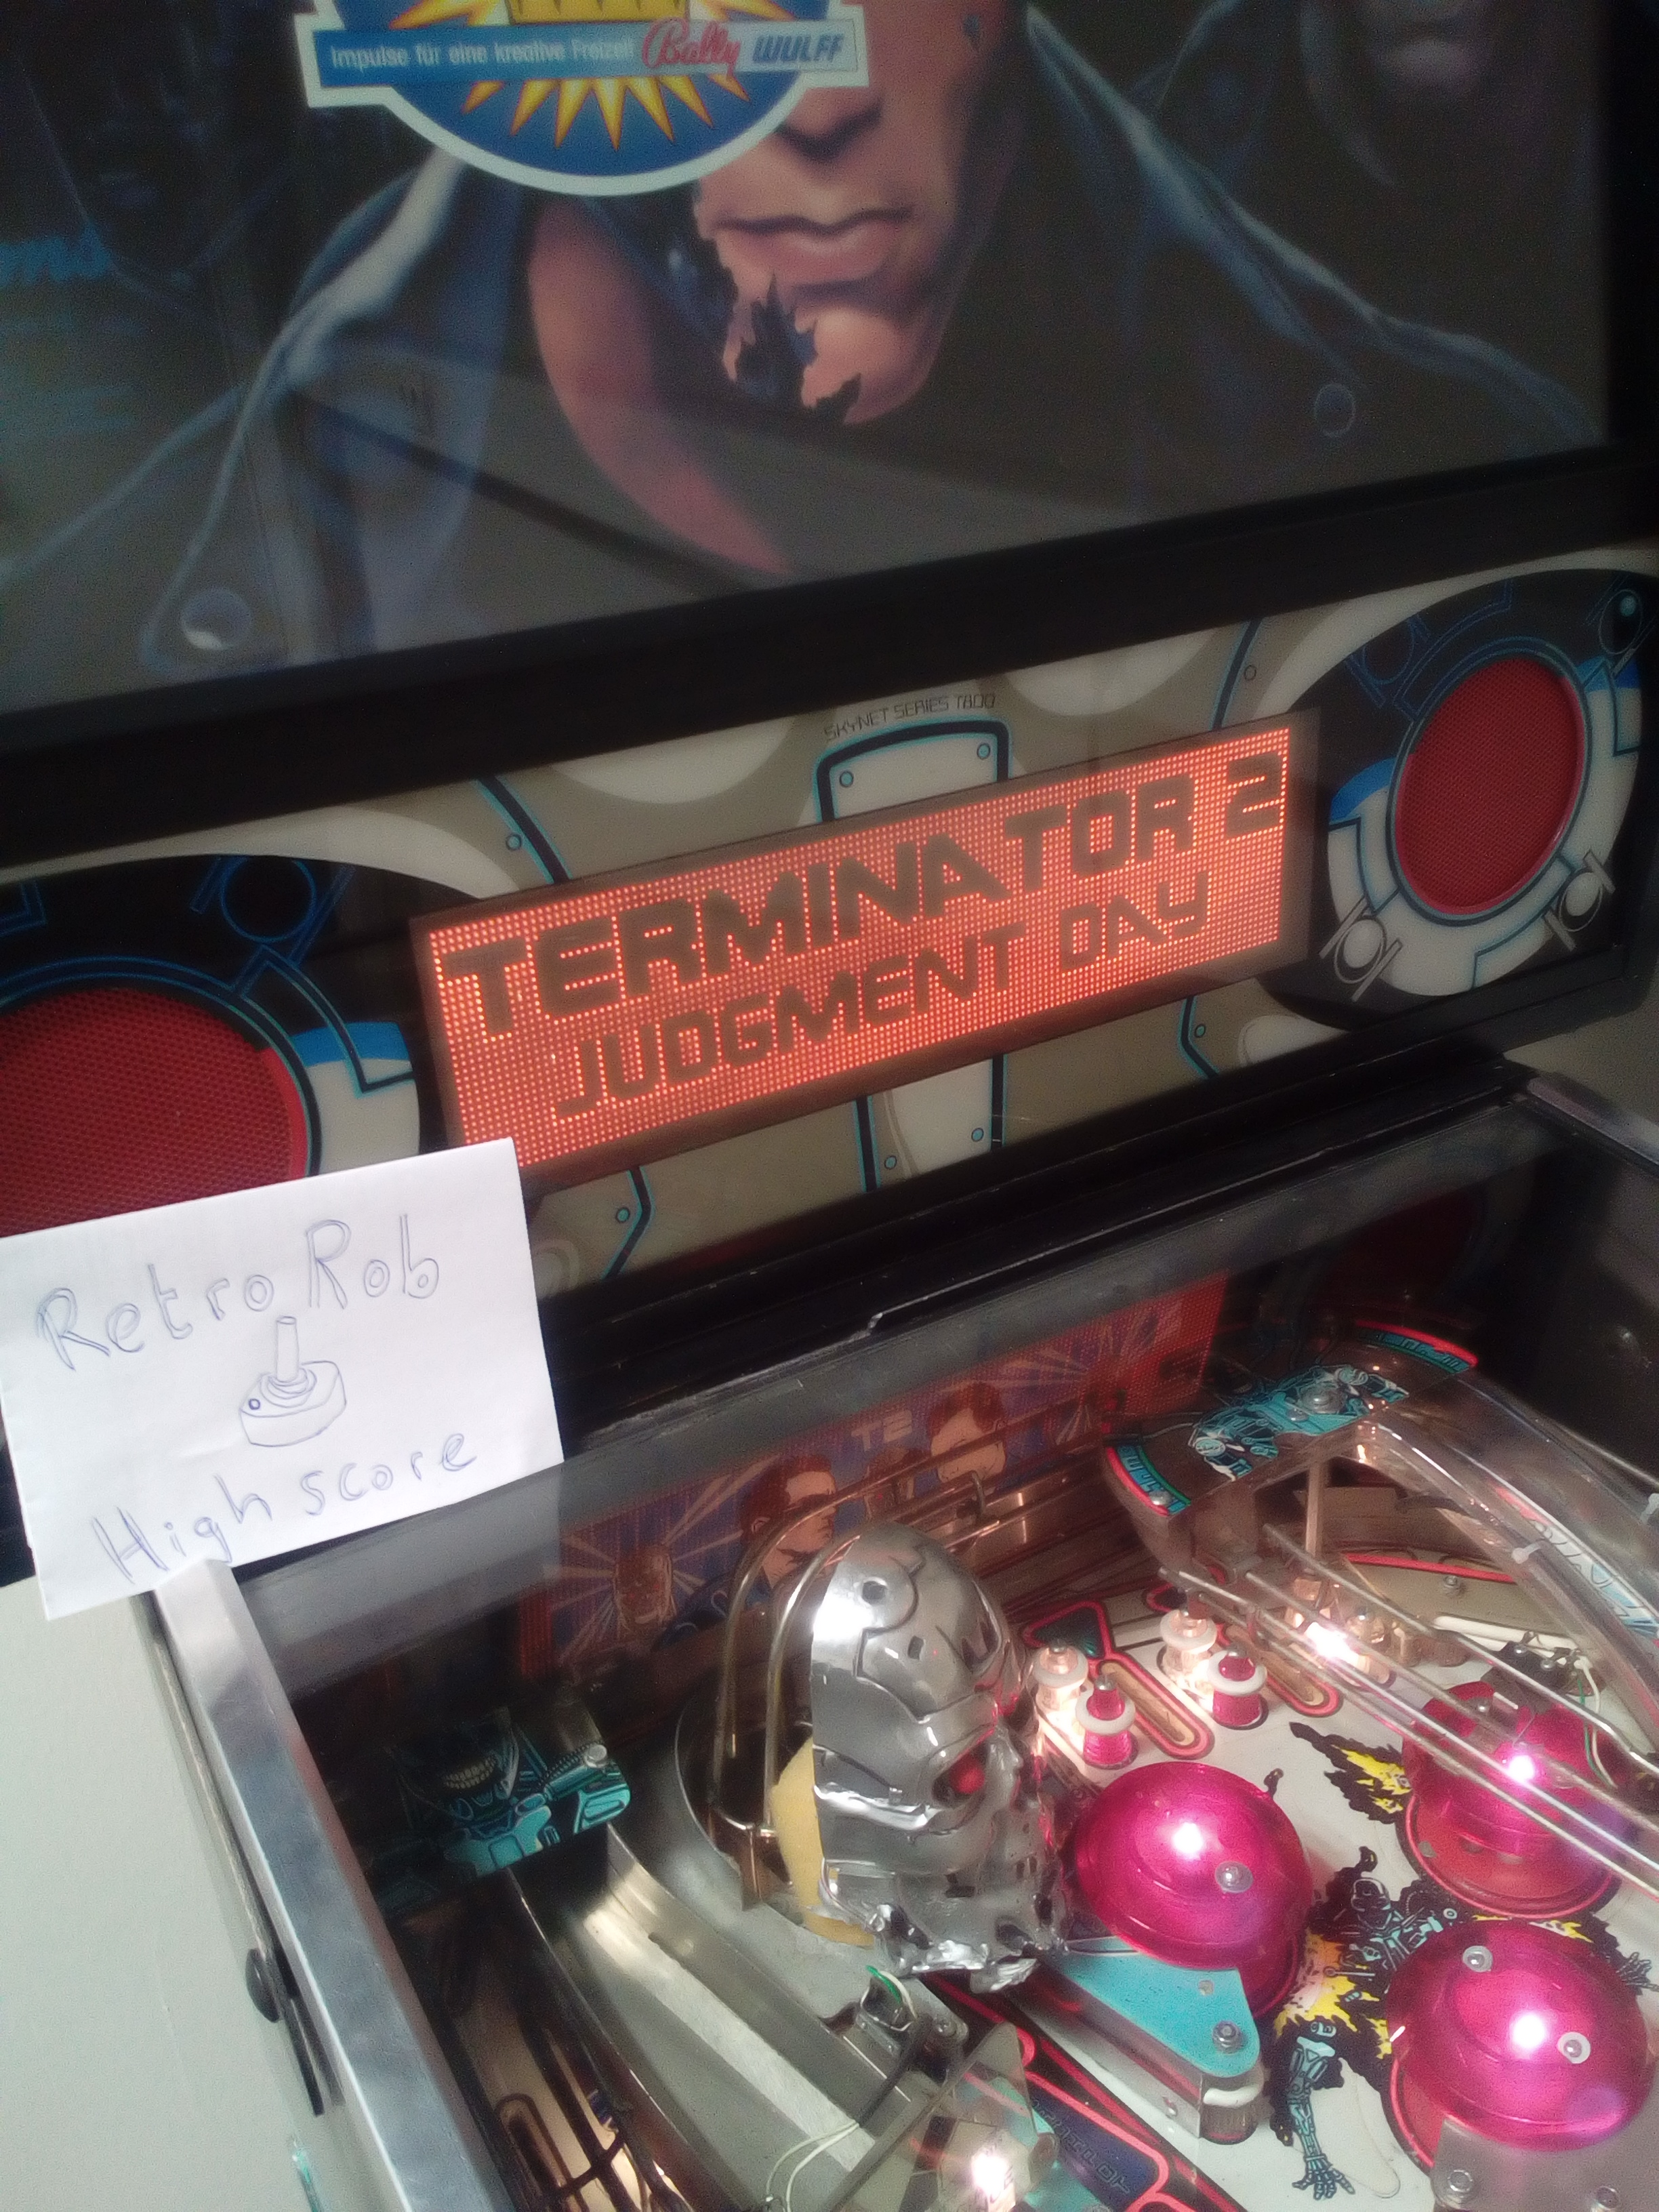 RetroRob: Terminator 2: Judgement Day (Pinball: 3 Balls) 9,657,680 points on 2018-10-15 03:54:47